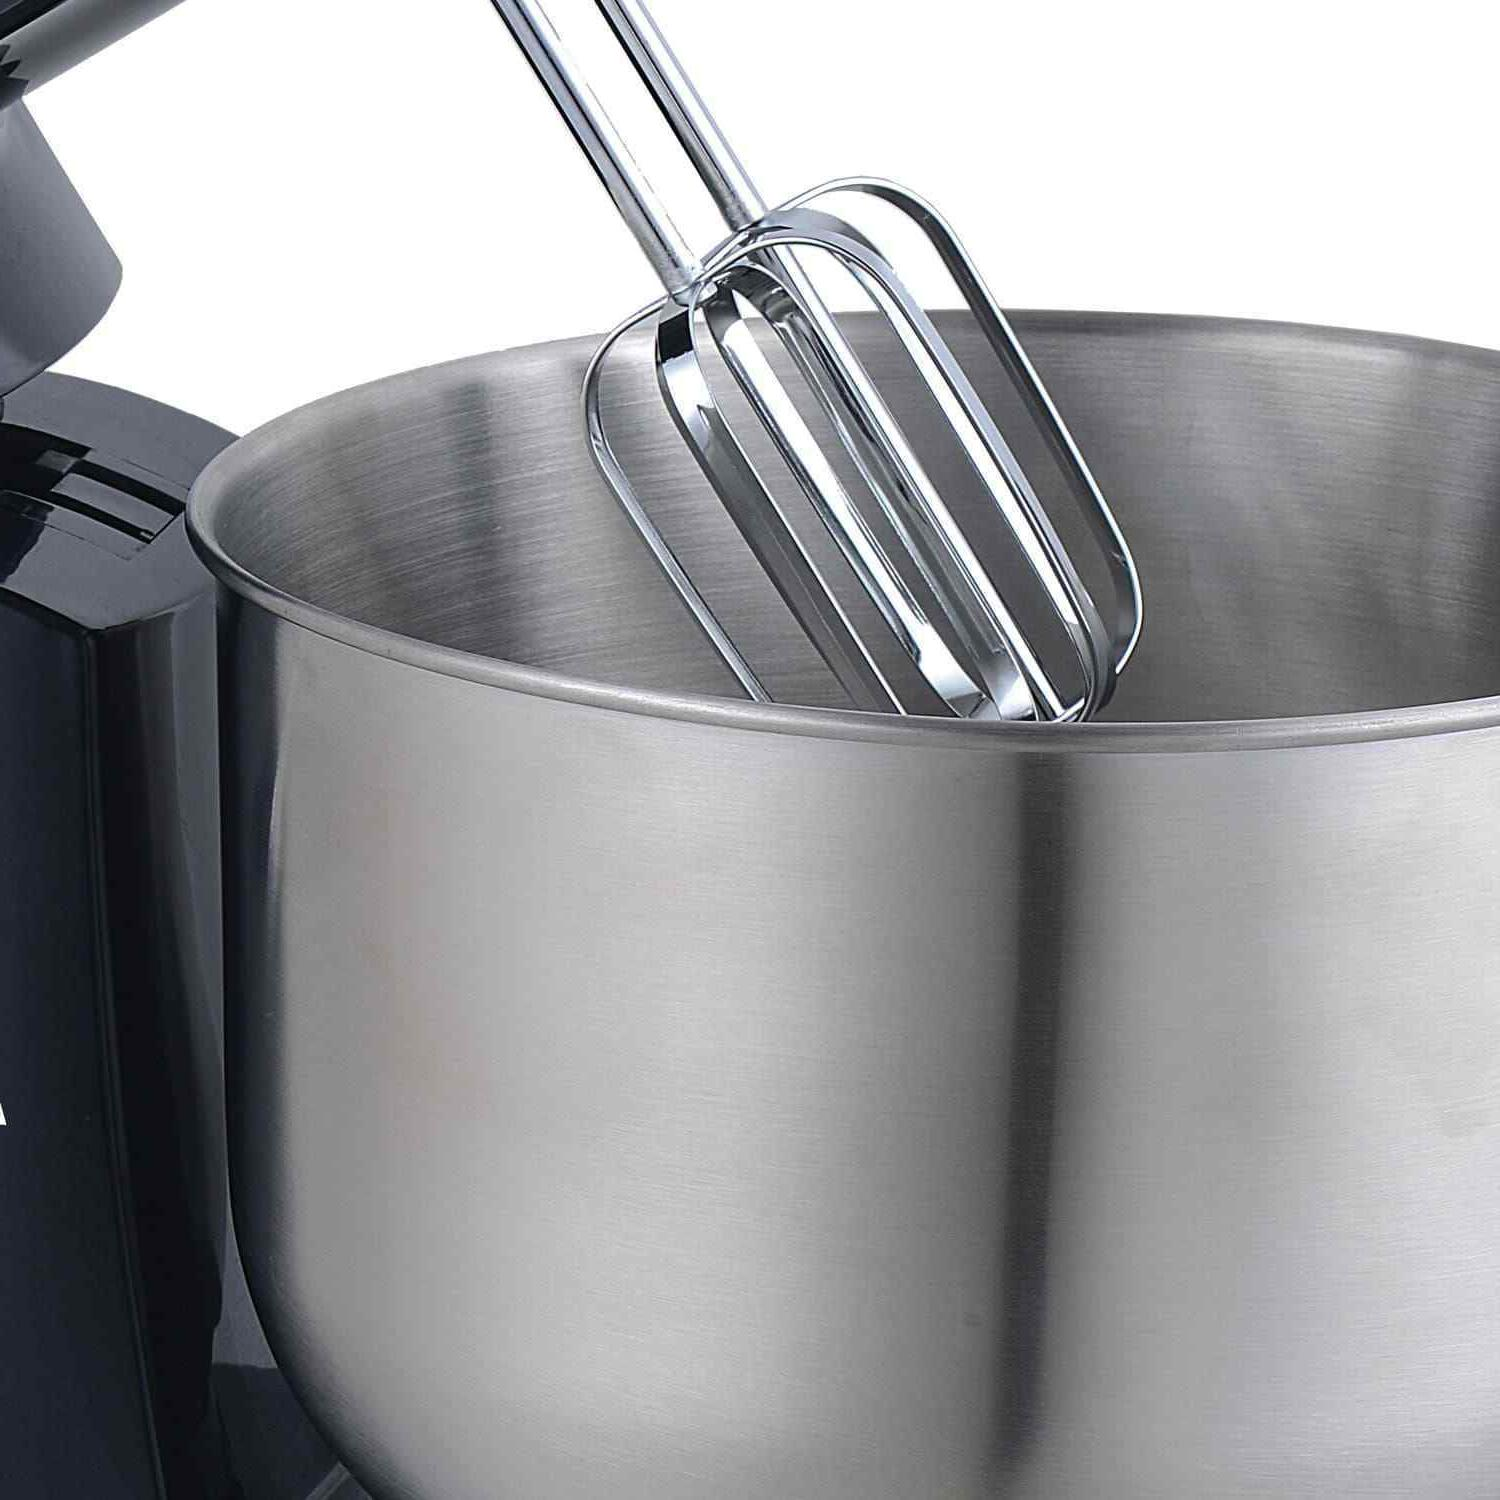 Brentwood SM-1162BK 5-Speed Stand Mixer Stainless Steel Mixing Bowl